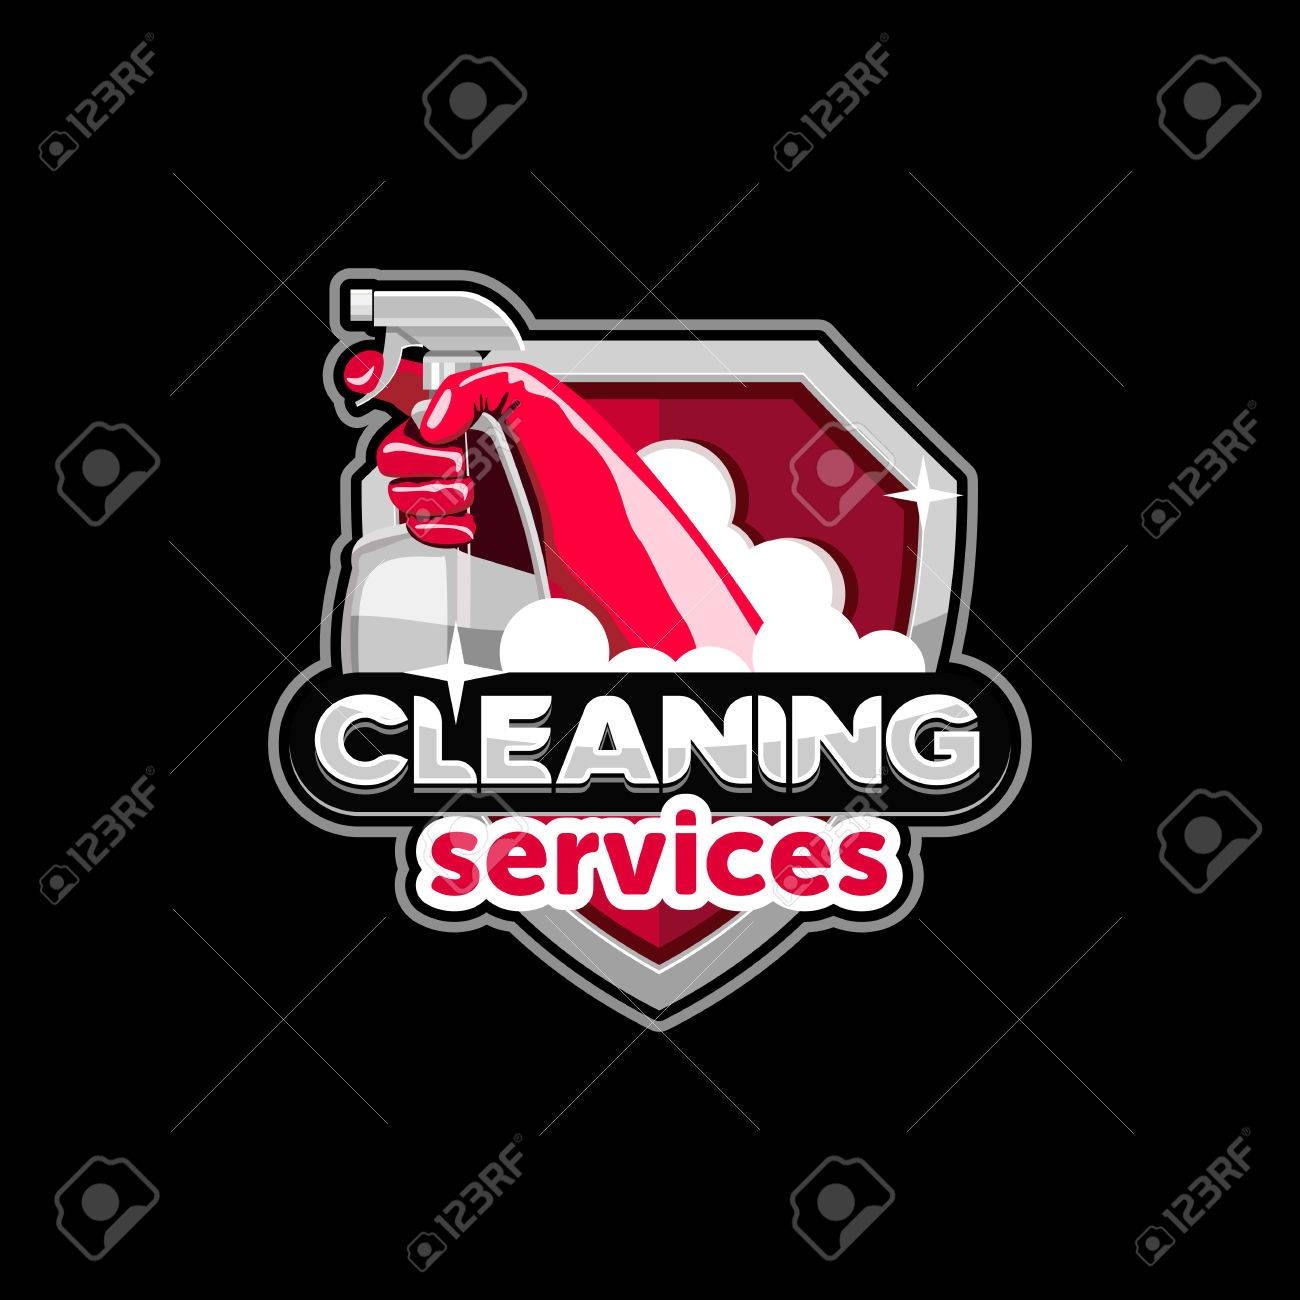 logo house cleaning service, vector - 65001845